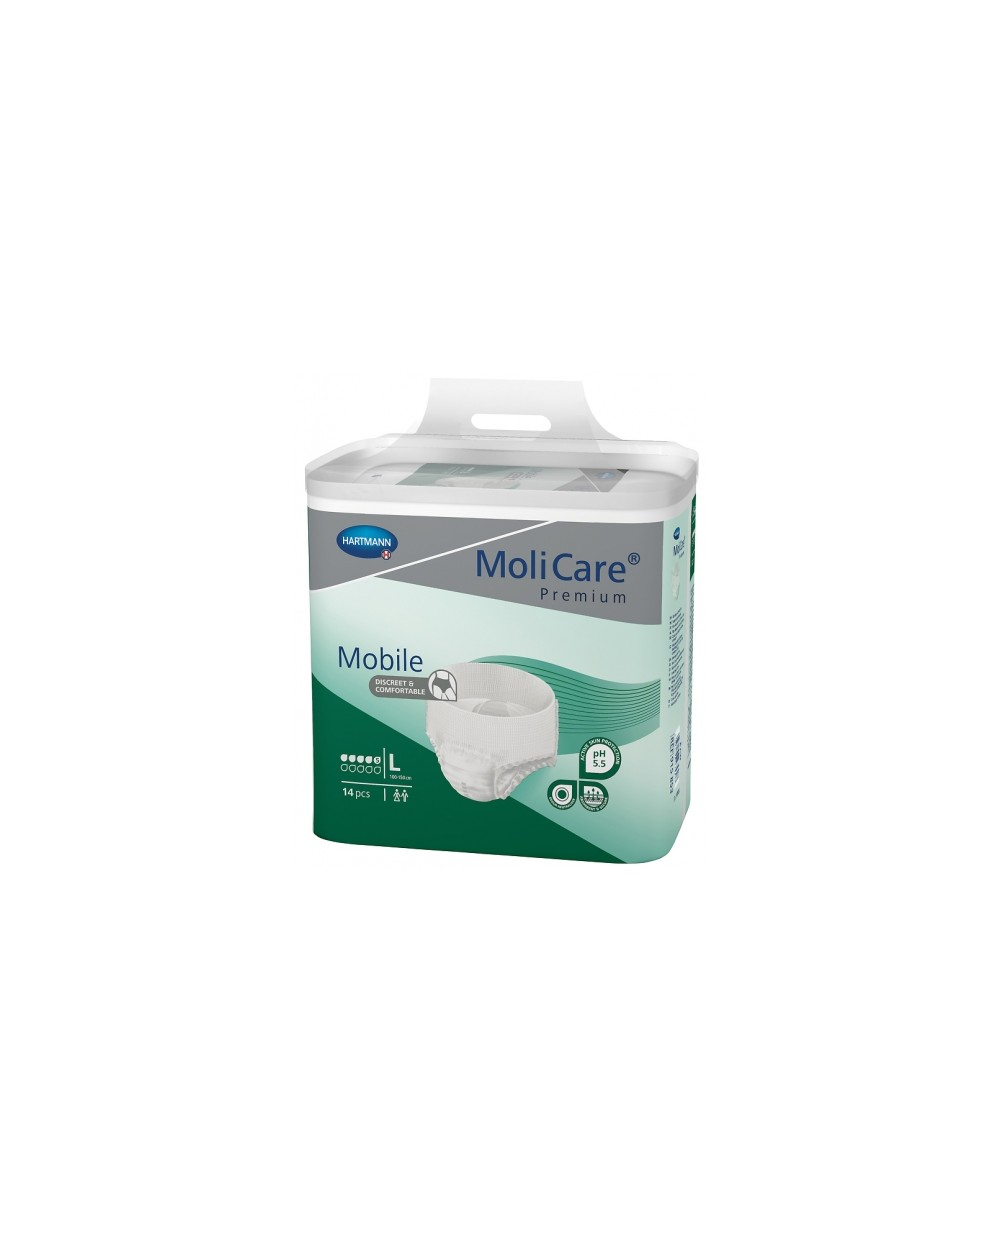 Hartmann MoliCare Mobile 5 gouttes Large- 14 protections